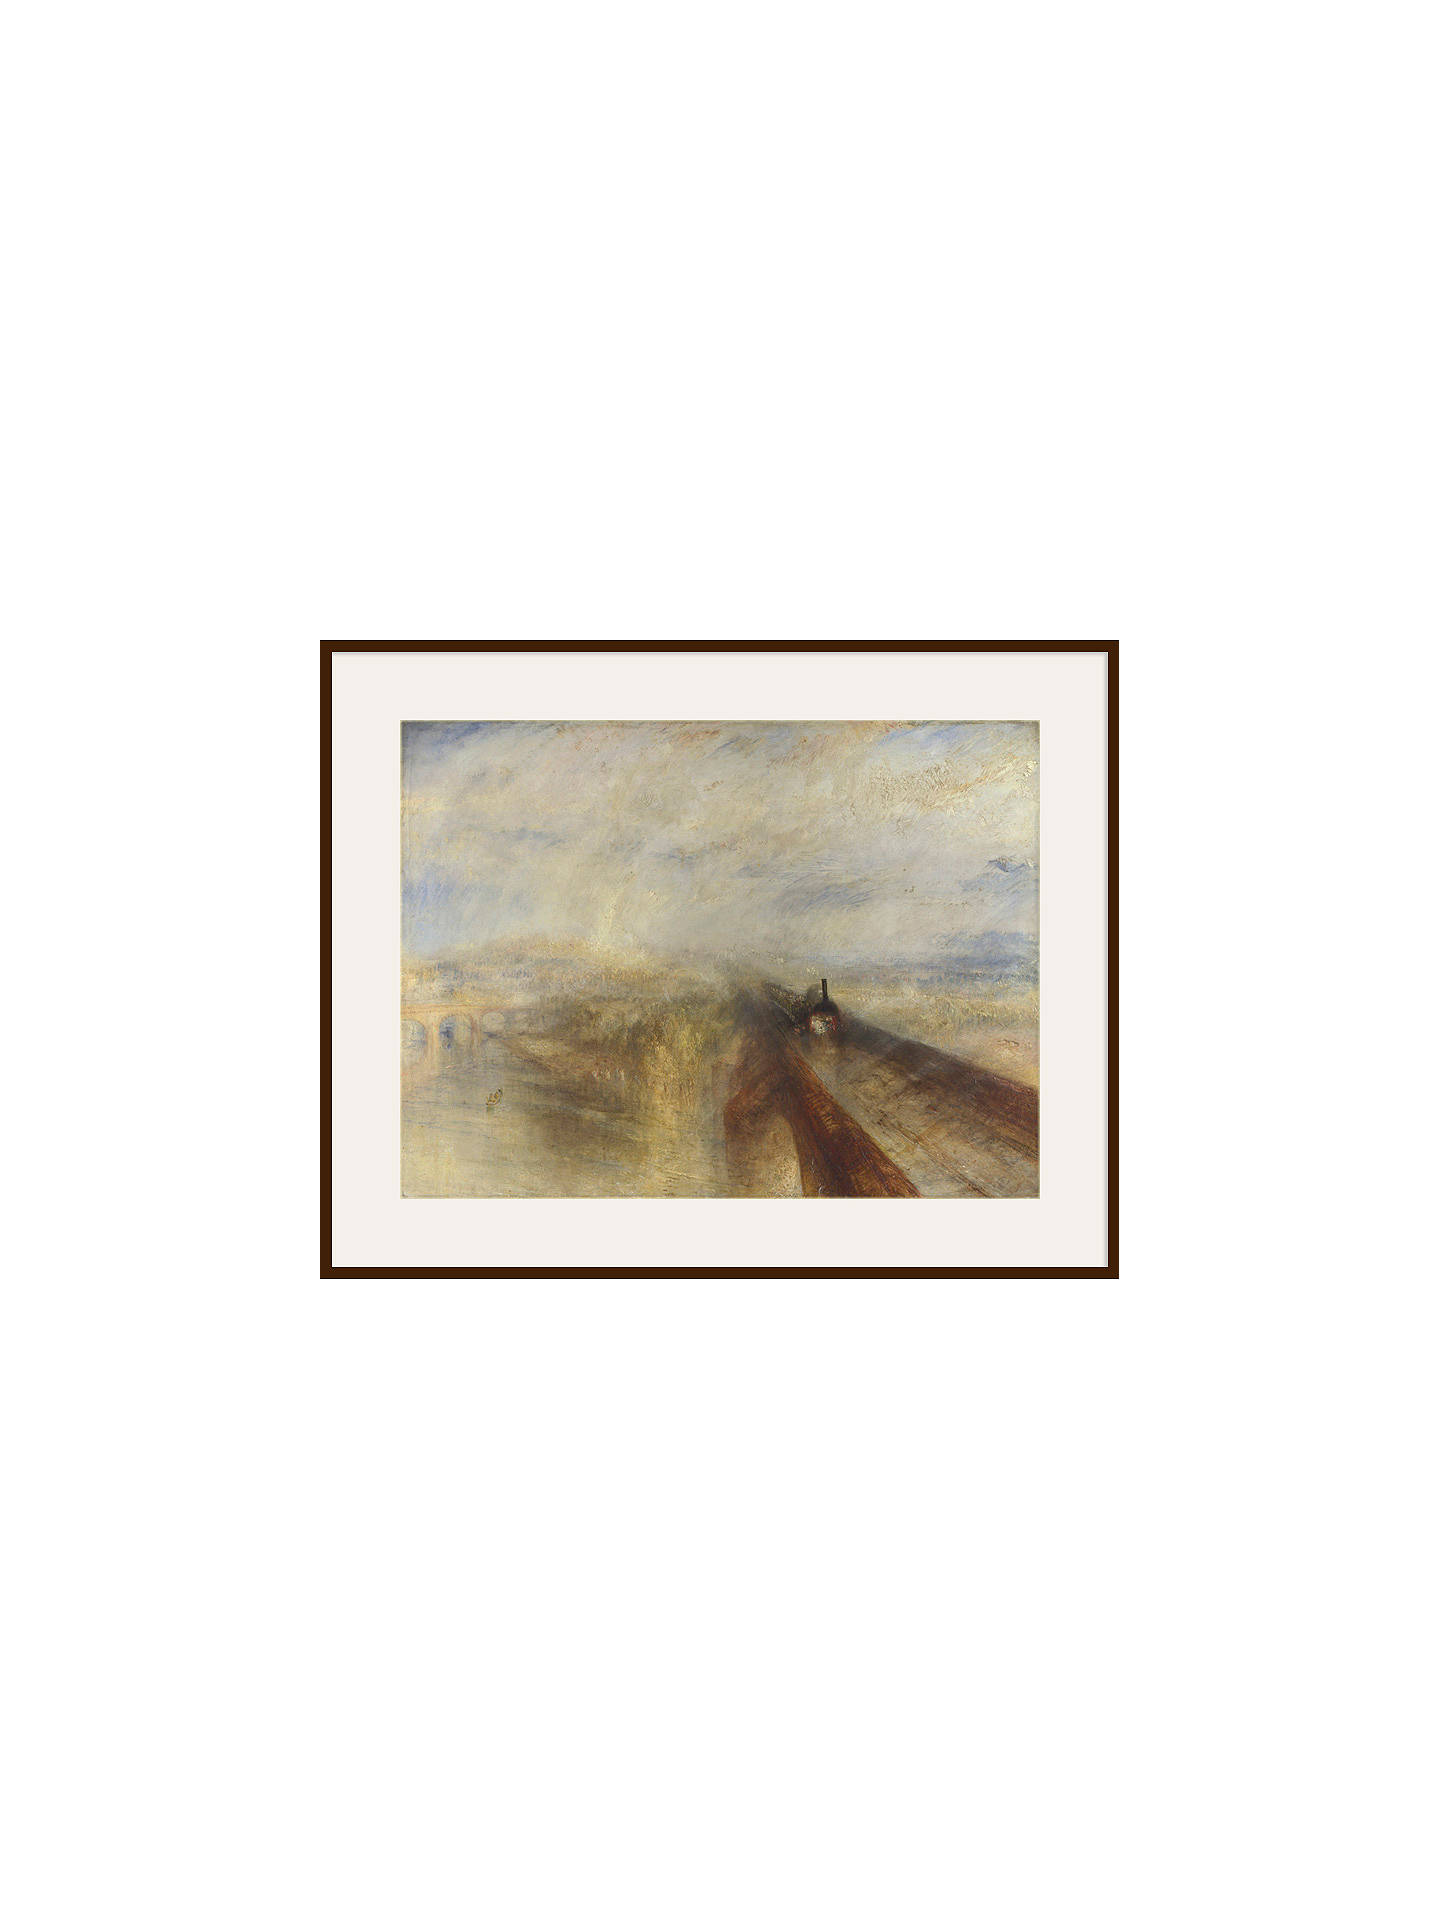 Buy Joseph Mallord William Turner- Rain, Steam and Speed, Dark Brown Framed Print, 40 x 50cm Online at johnlewis.com